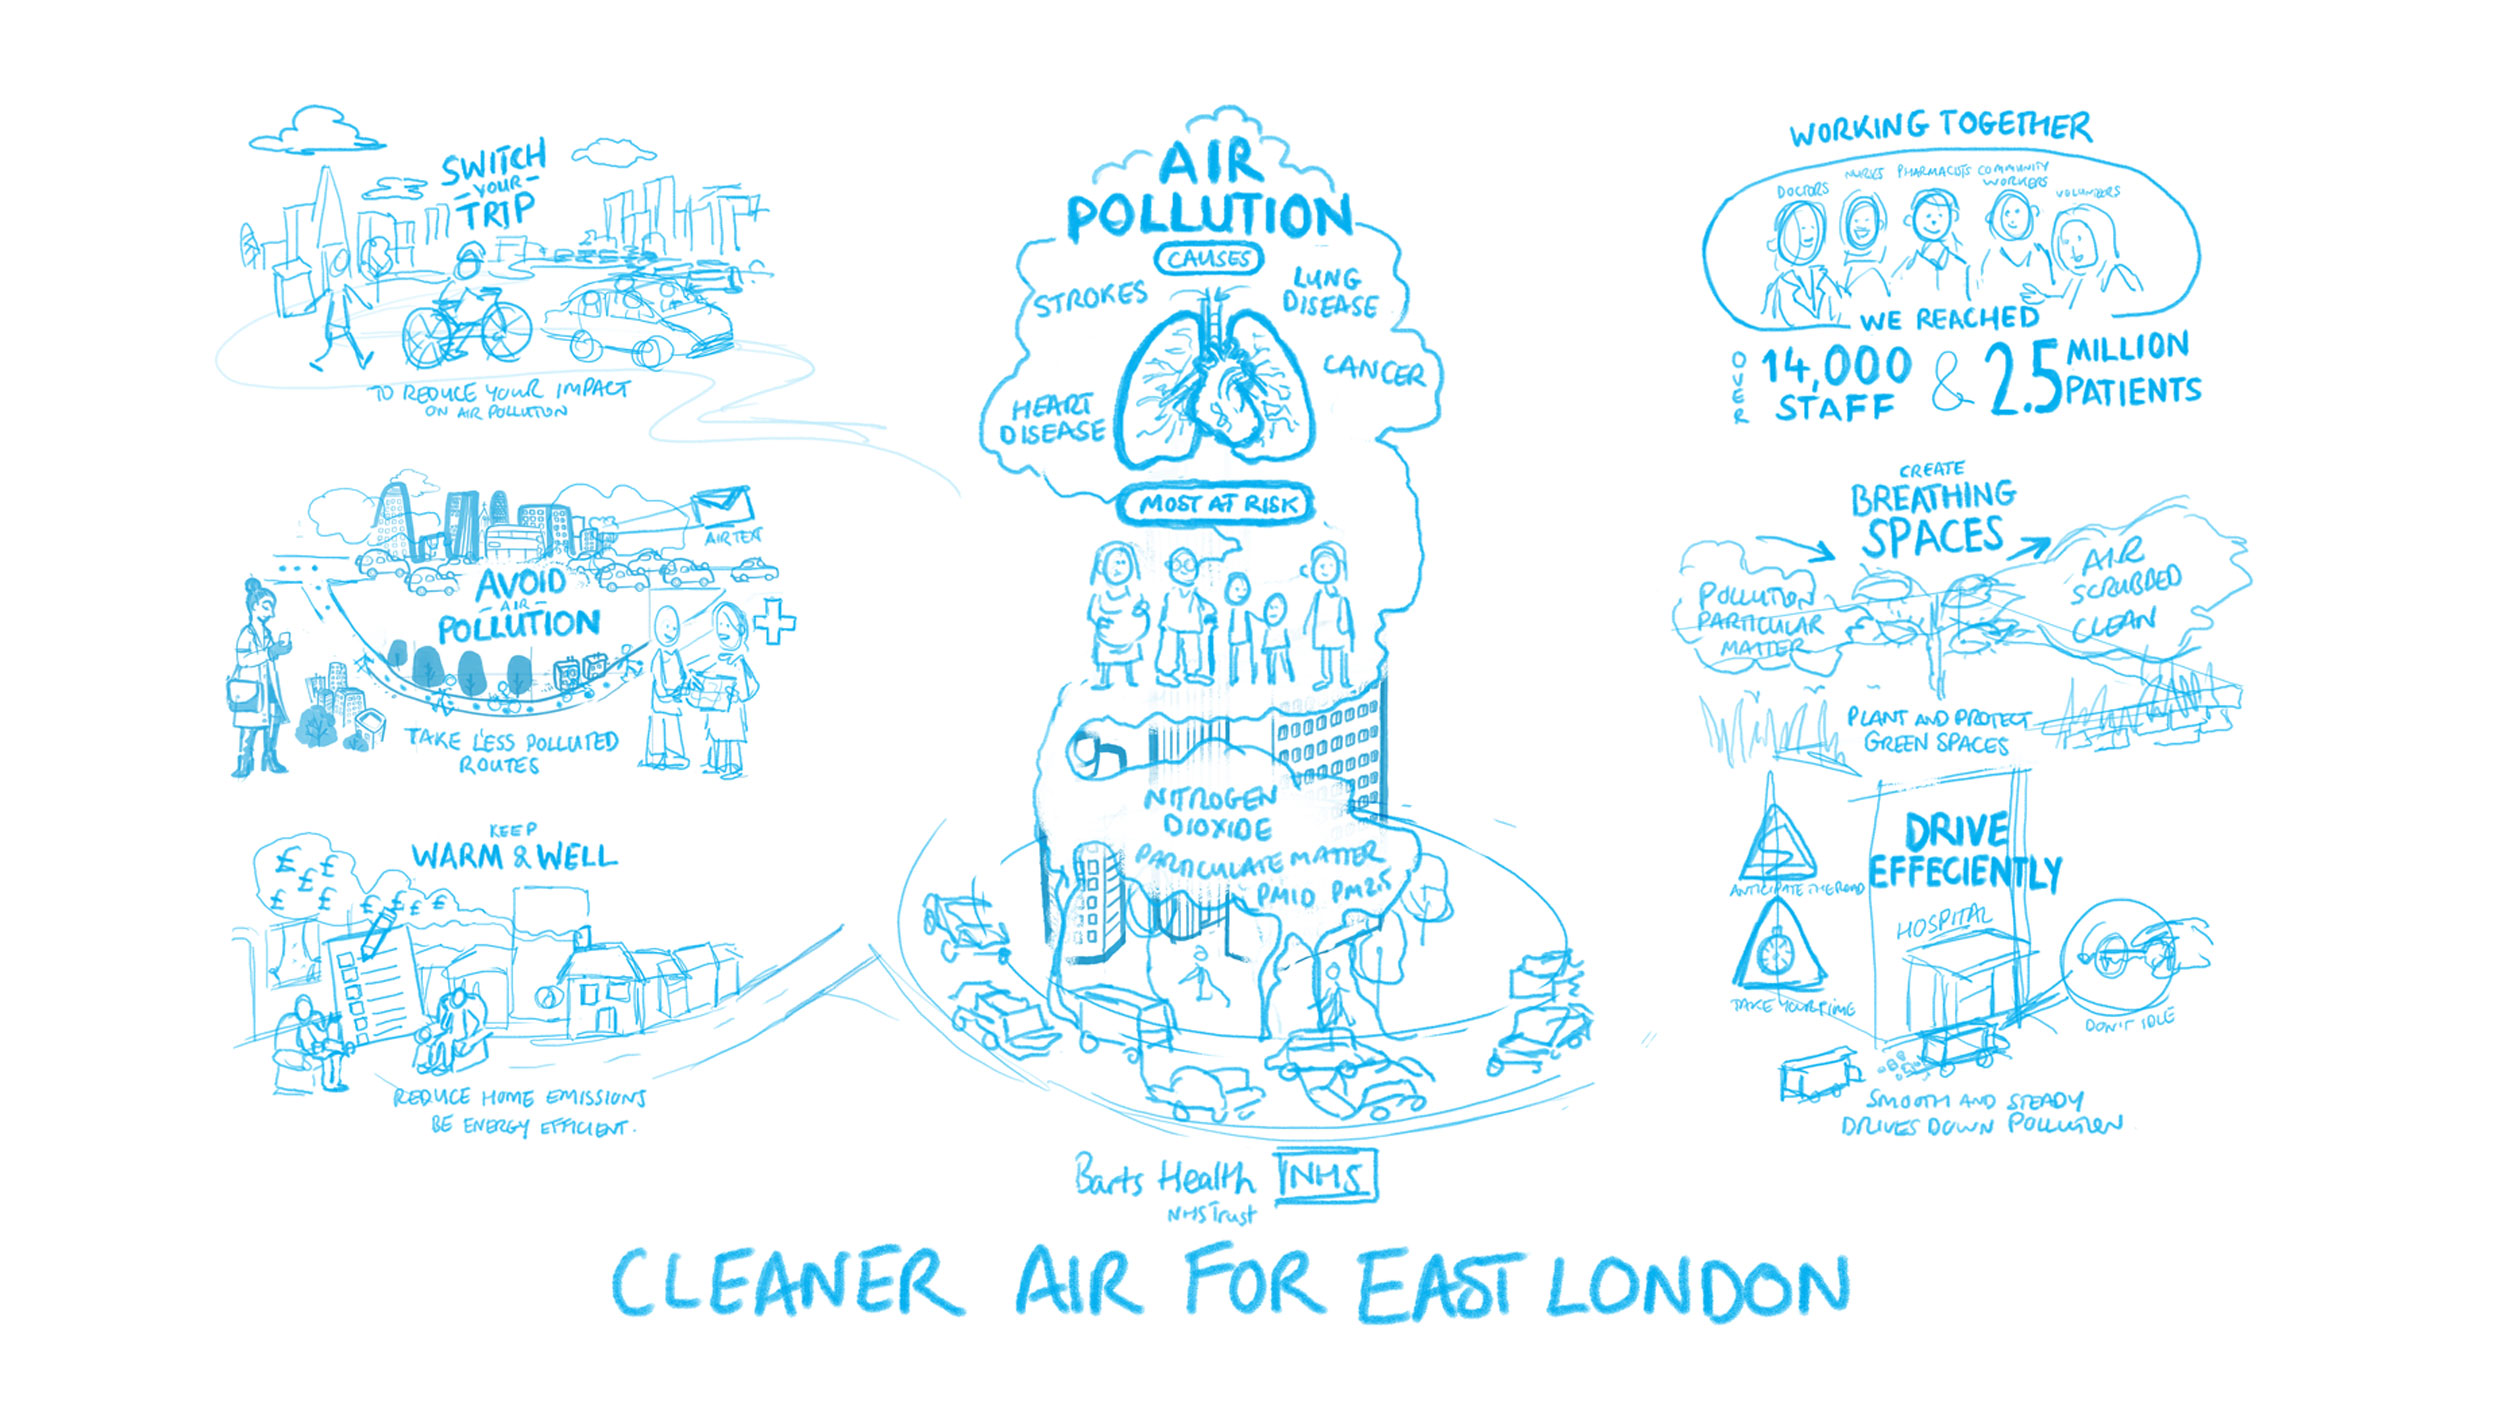 barts-air-quality-cognitive-01.jpg